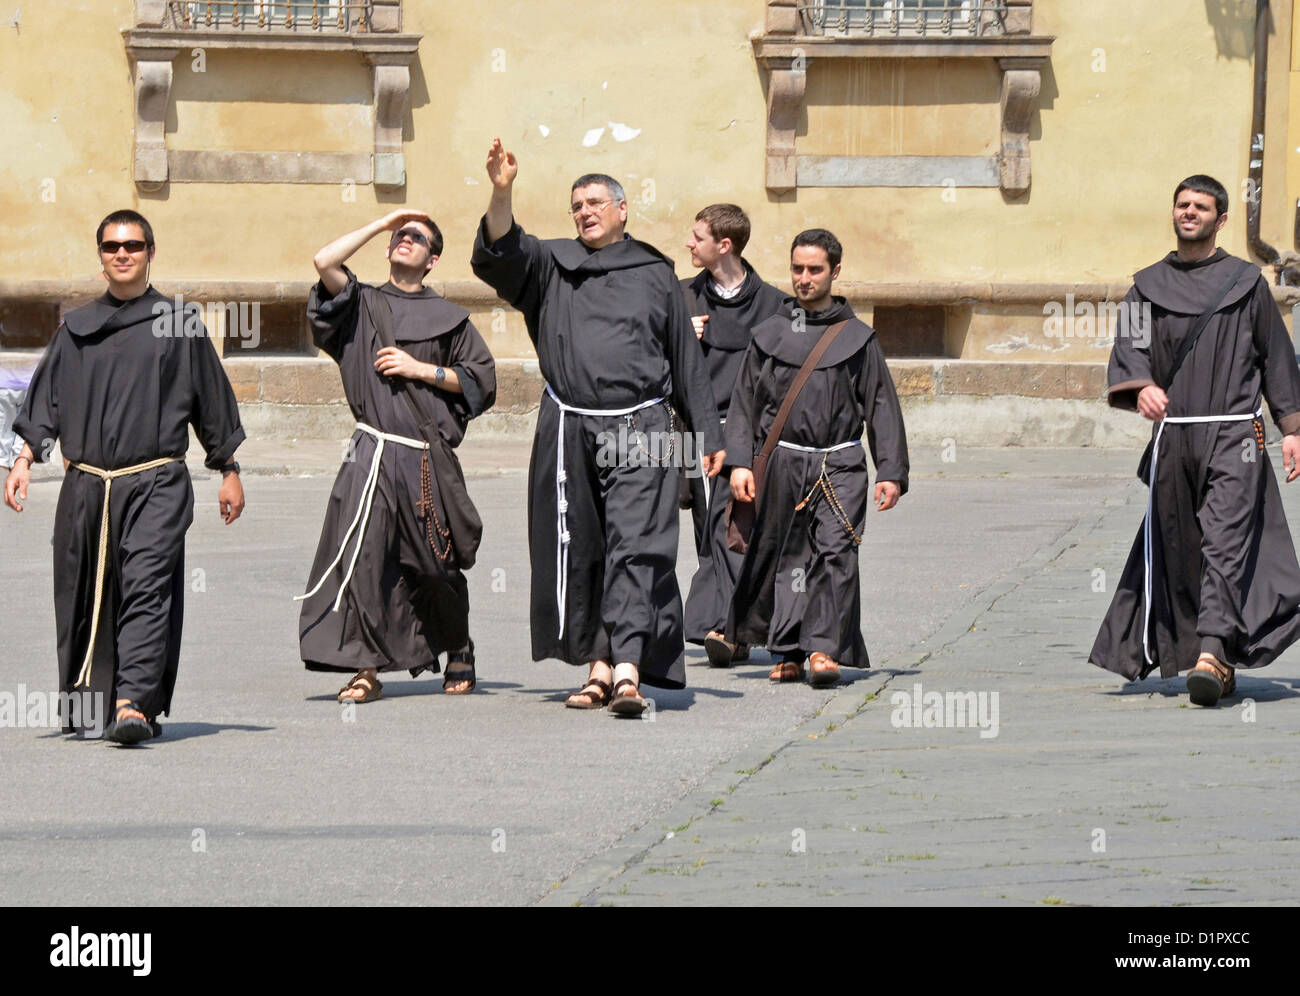 A group of Franciscan Monks dressed in robes sightseeing in Lucca, Italy - Stock Image